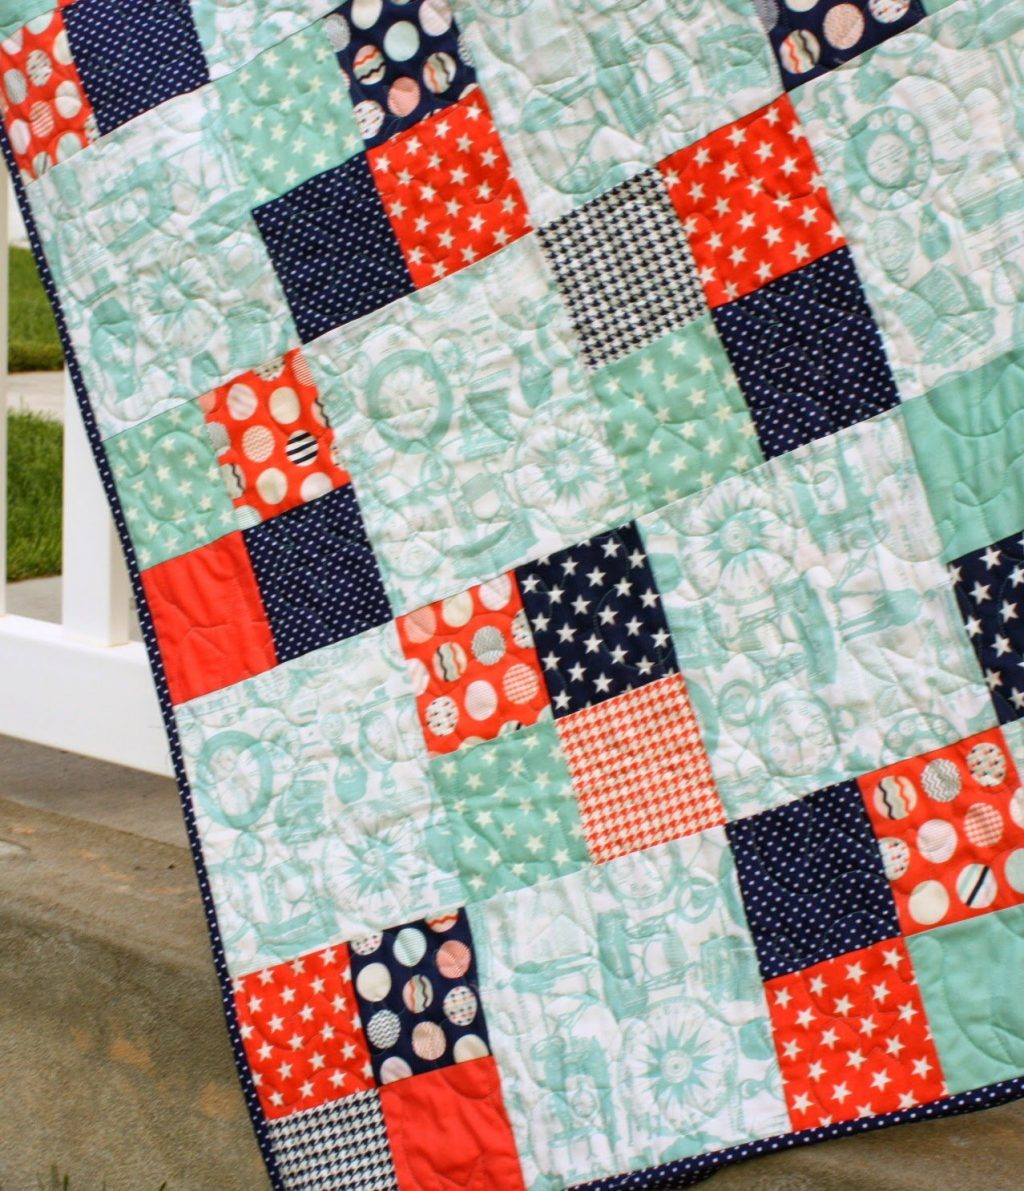 Beginner Quilting Project Ideas - Fast Four Patch Quilt Tutorial by Diary of a Quilter